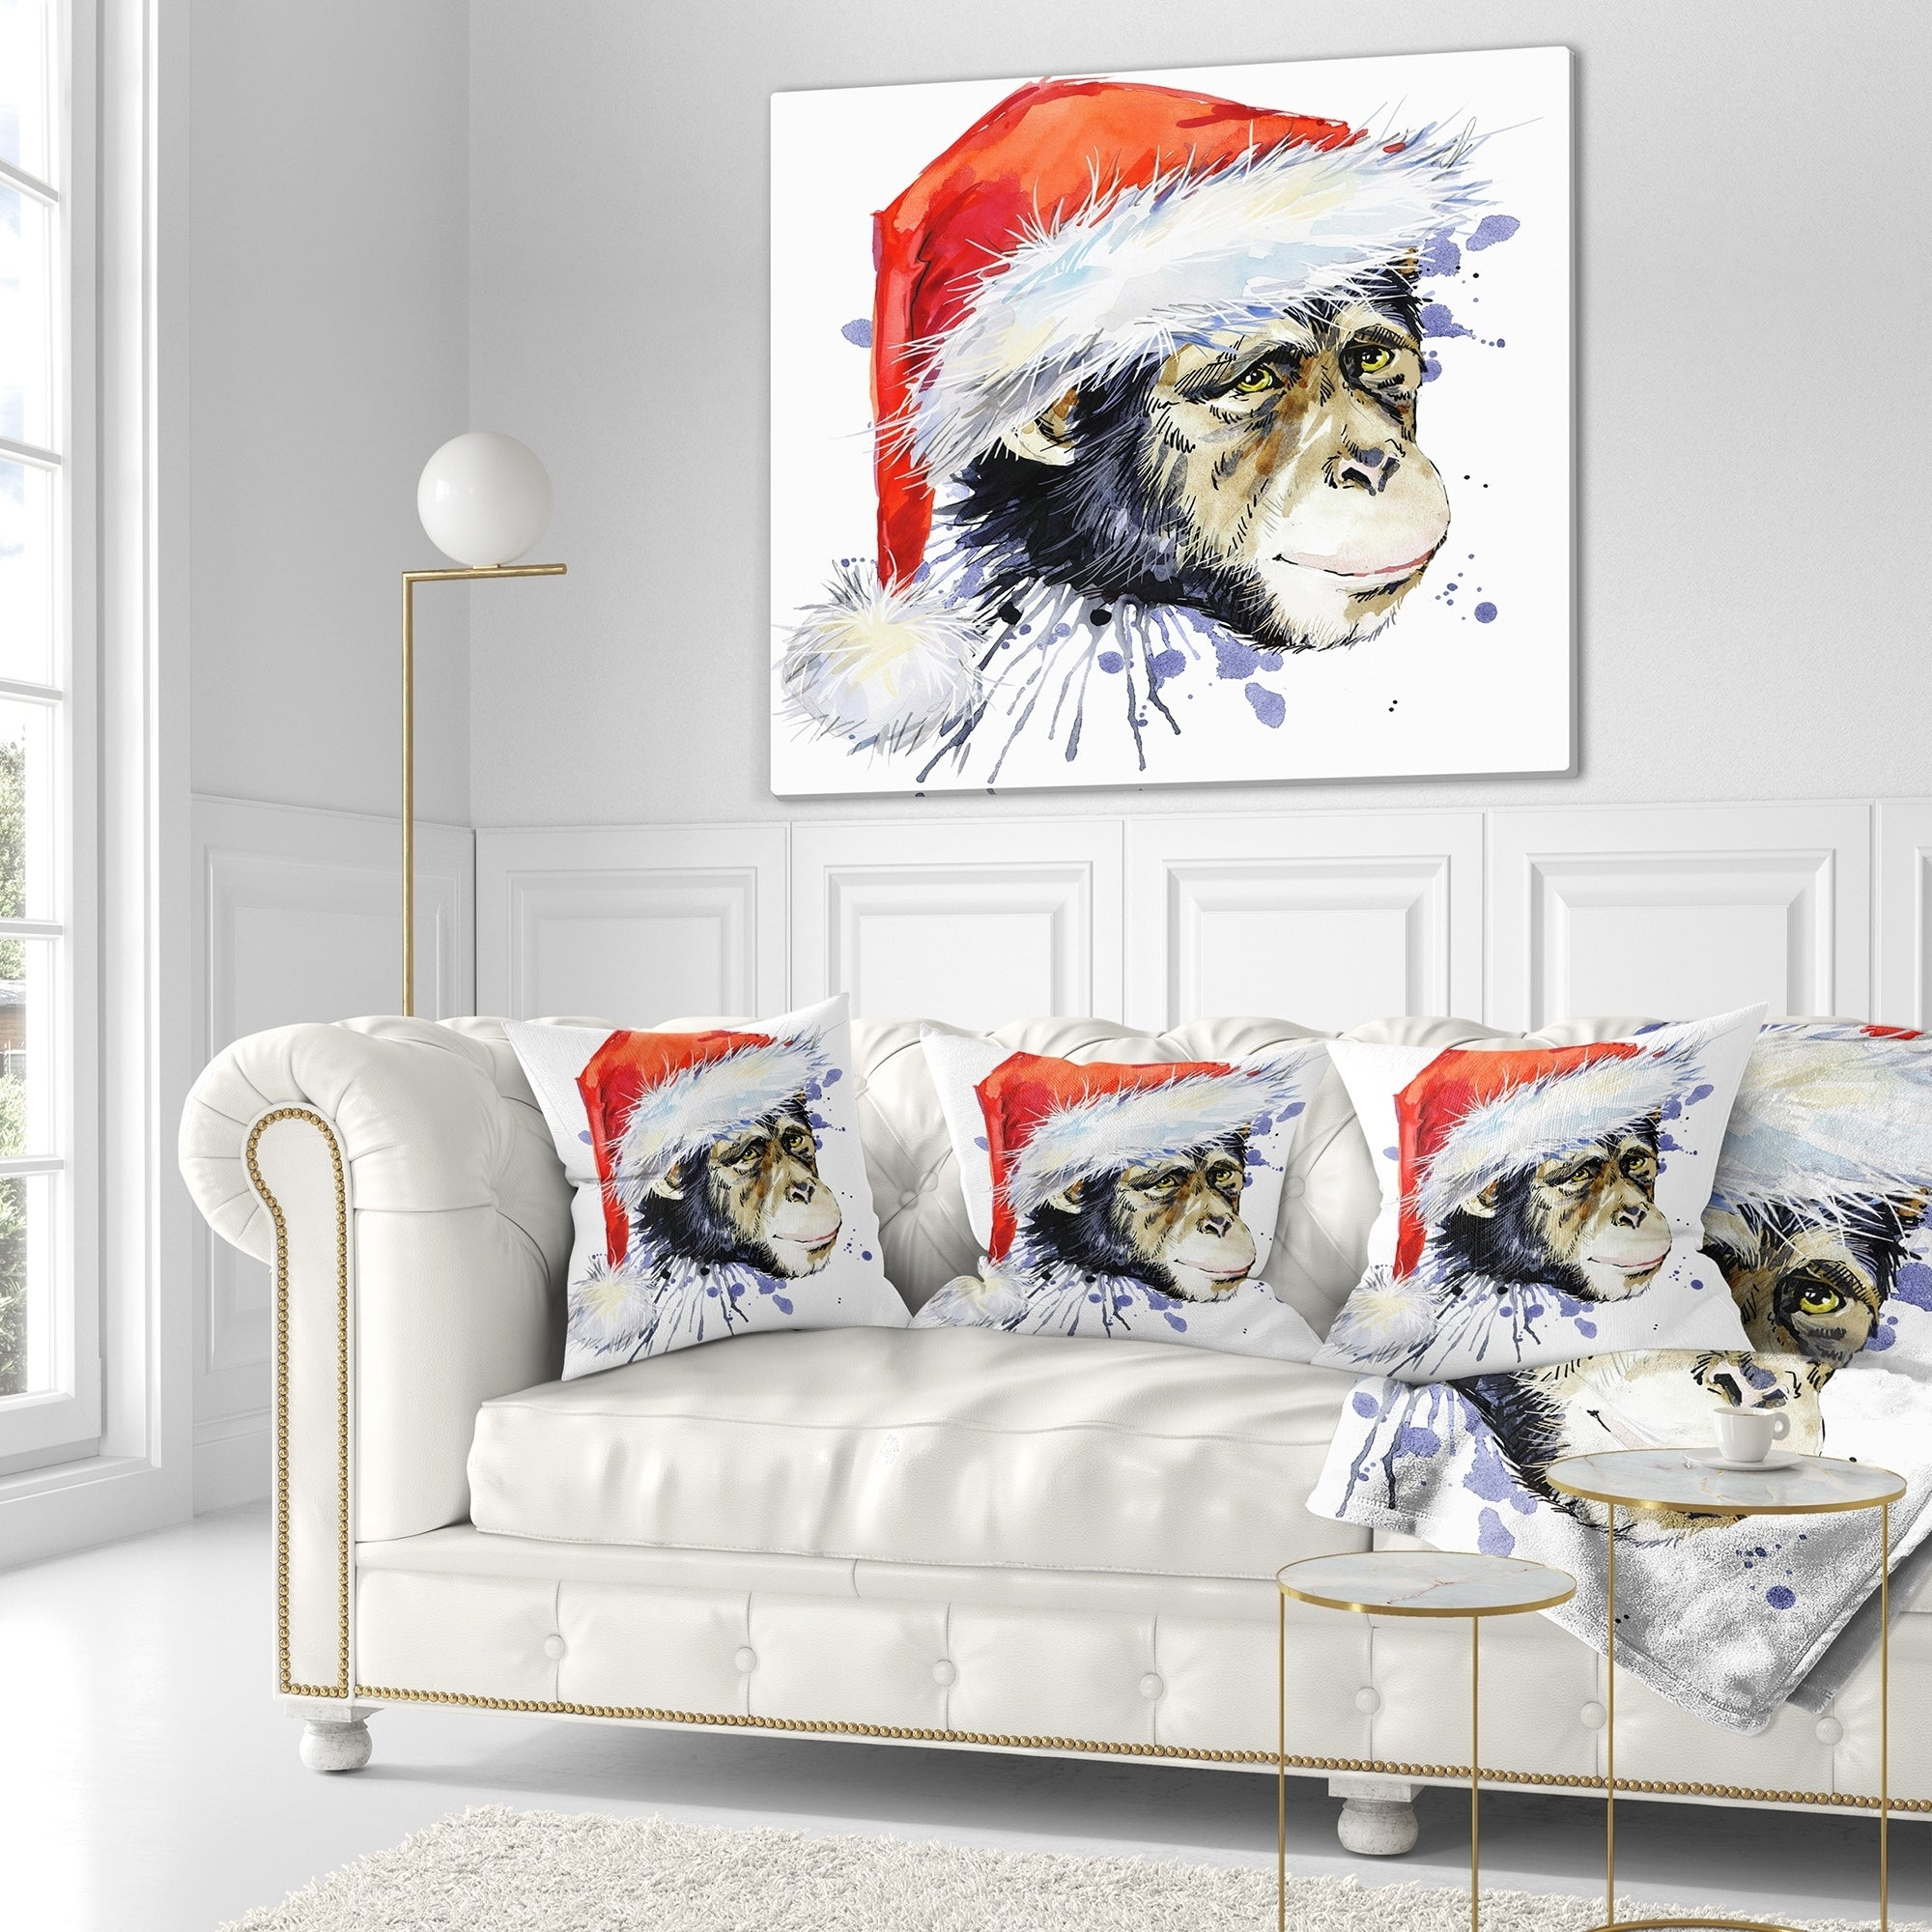 Designart Monkey Santa Clause Animal Throw Blanket Overstock 20909815 71 In X 59 In